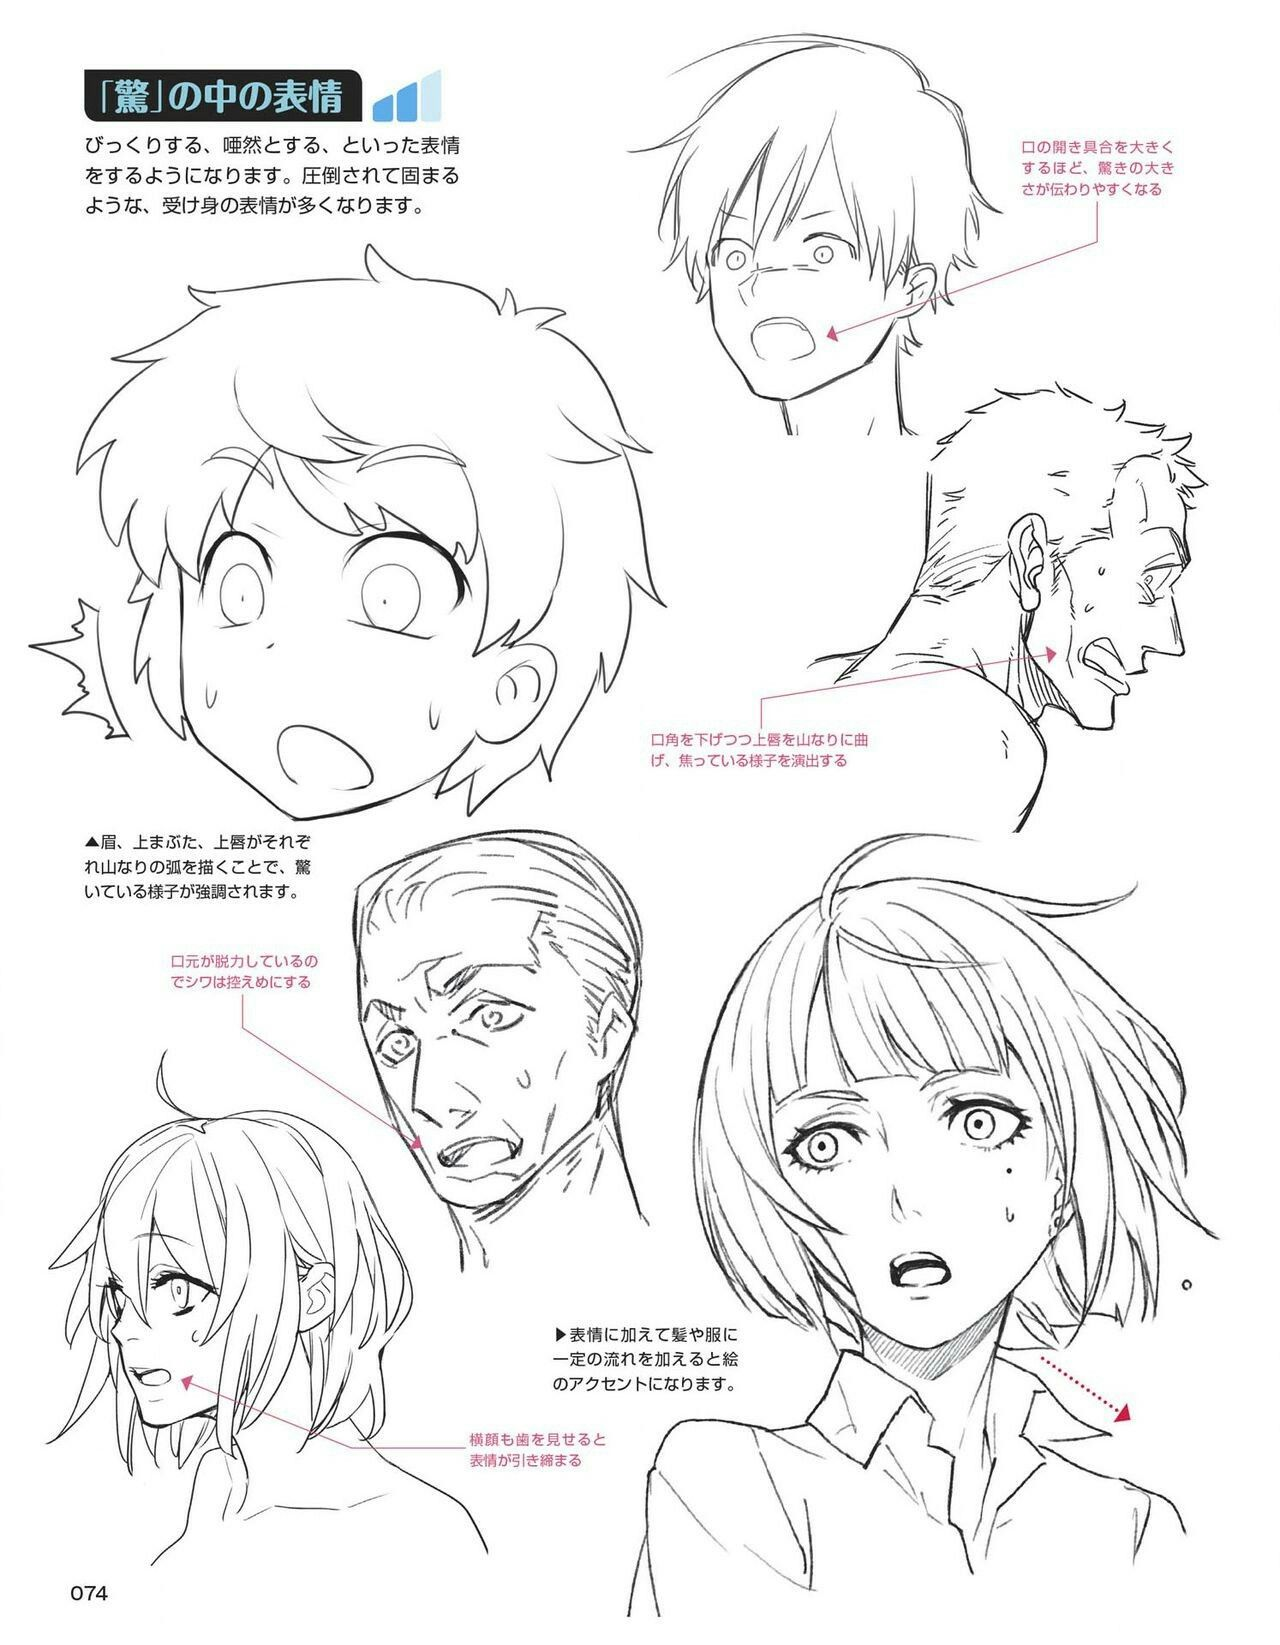 Drawing expressions by พล on chibi anime faces